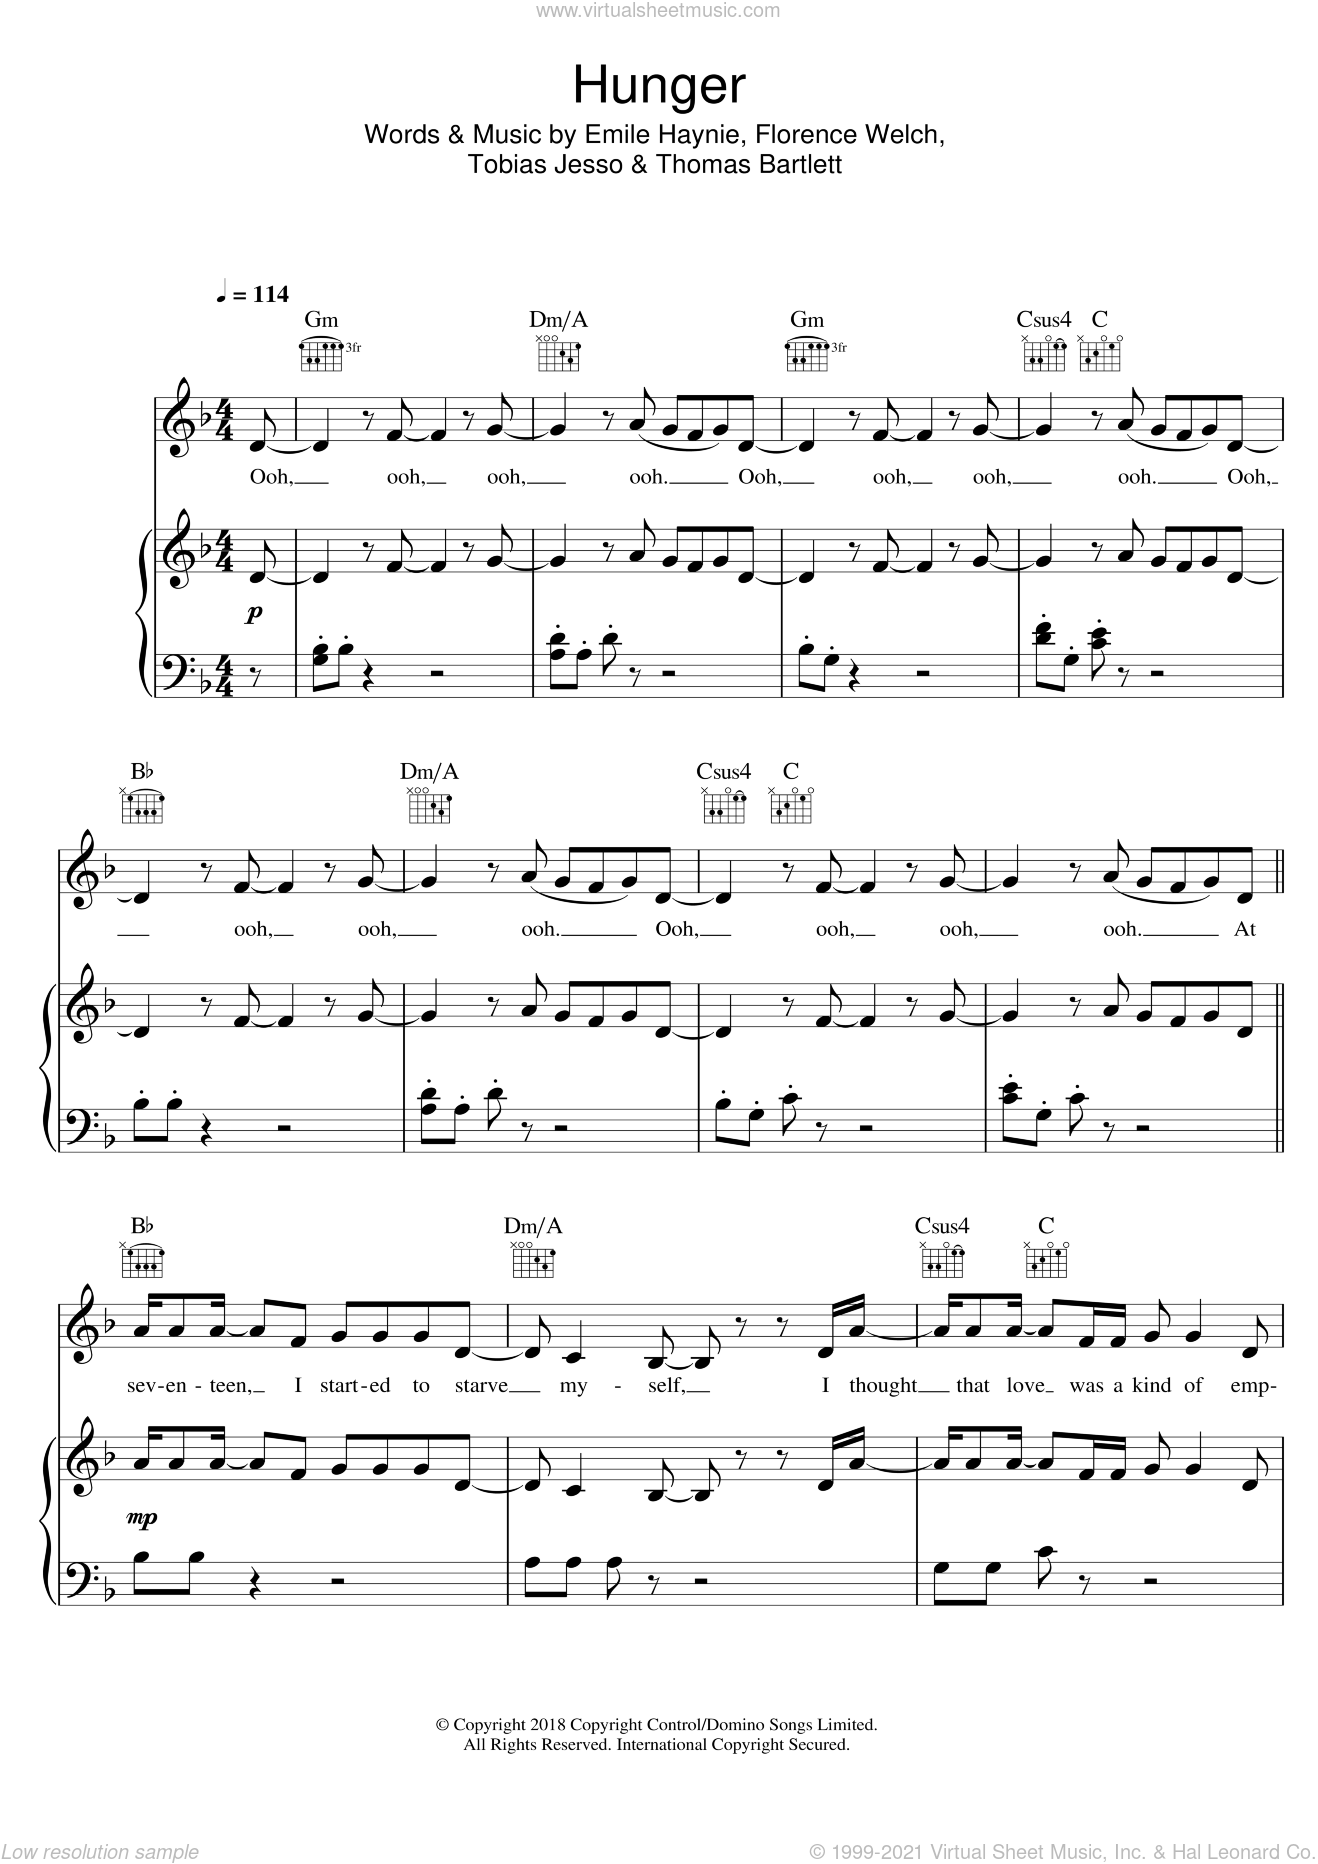 Hunger sheet music for voice, piano or guitar by Emile Haynie, Florence + The Machine, Florence And The  Machine, Florence Welch, Thomas Bartlett and Tobias Jesso, intermediate skill level